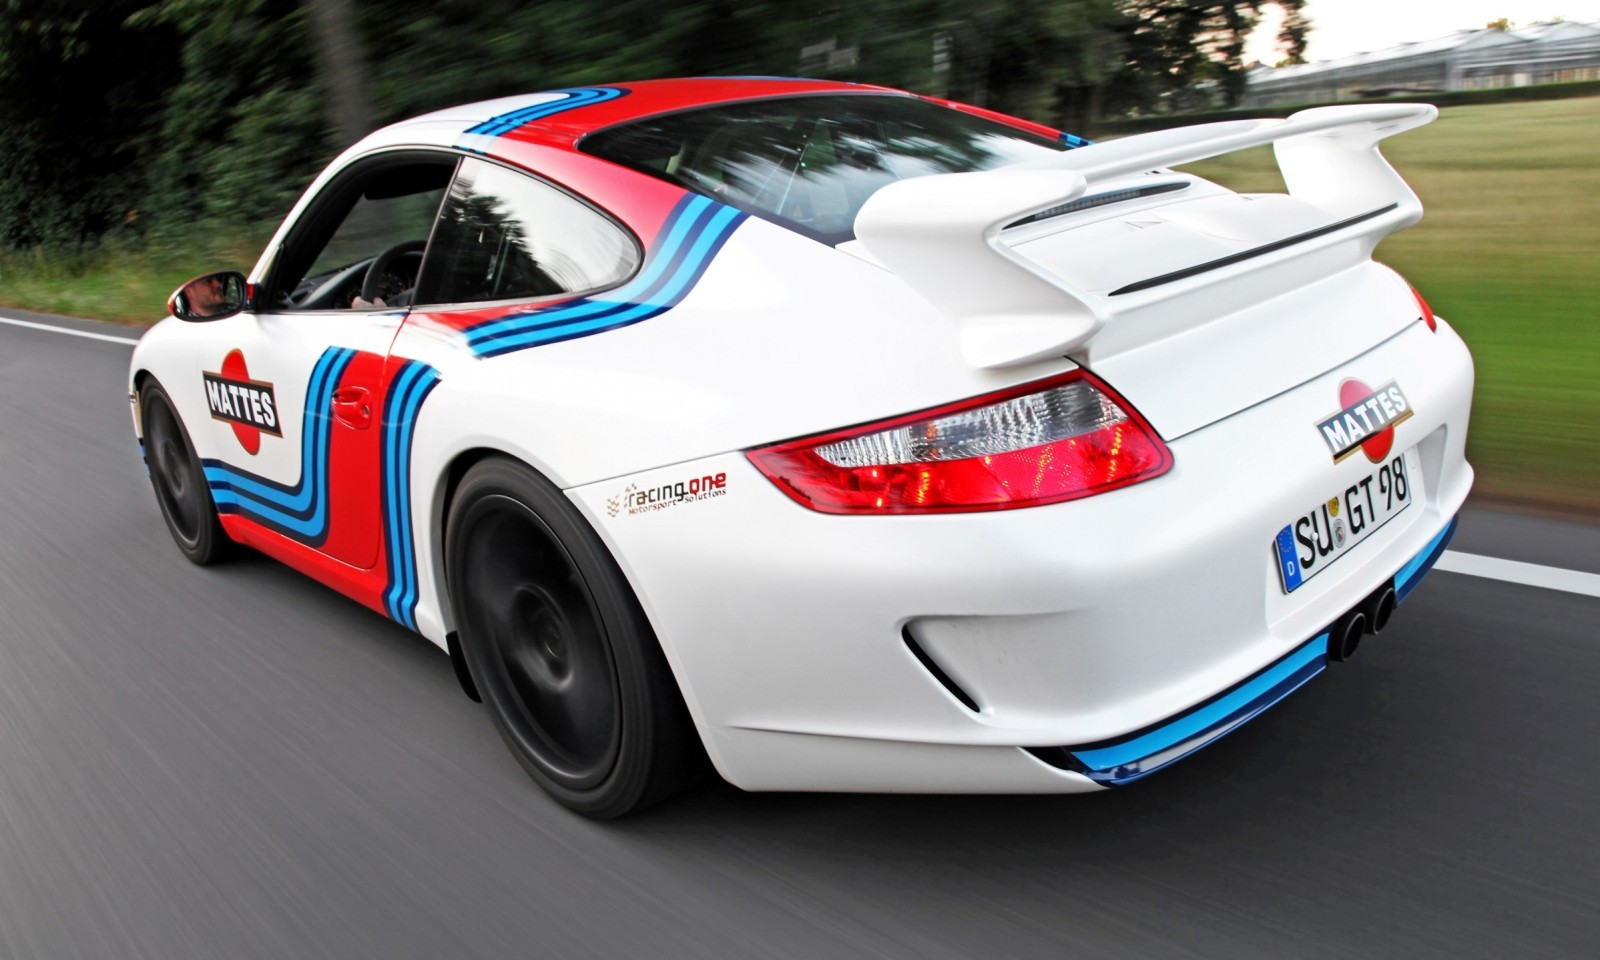 Martini-style Racing Livery by CAM SHAFT for the Porsche 911 GT3 11